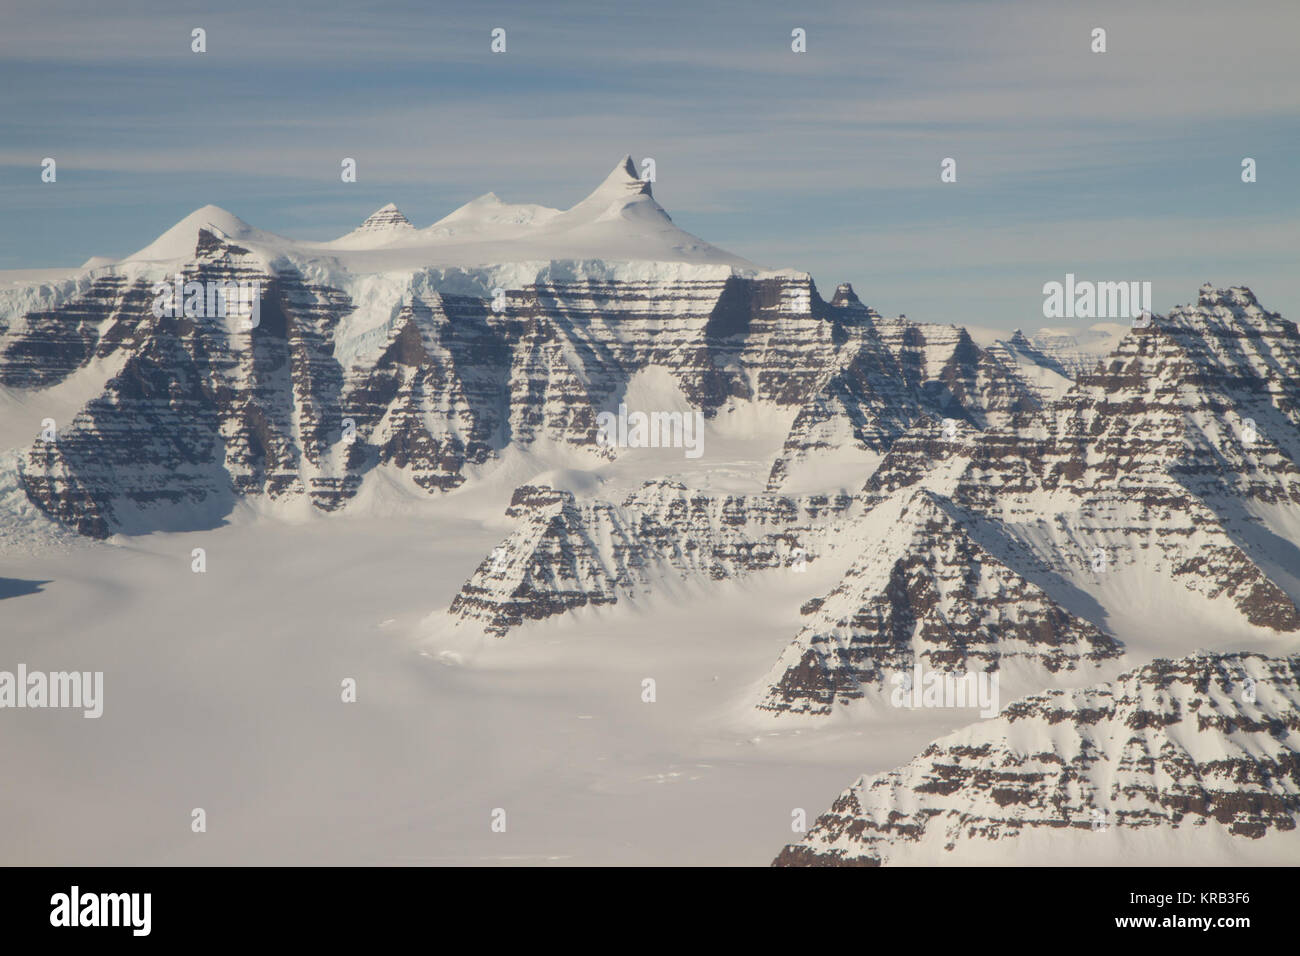 Mountain ridges showing the distinctive geology of the Geikie Plateau region in eastern Greenland, as seen from - Stock Image